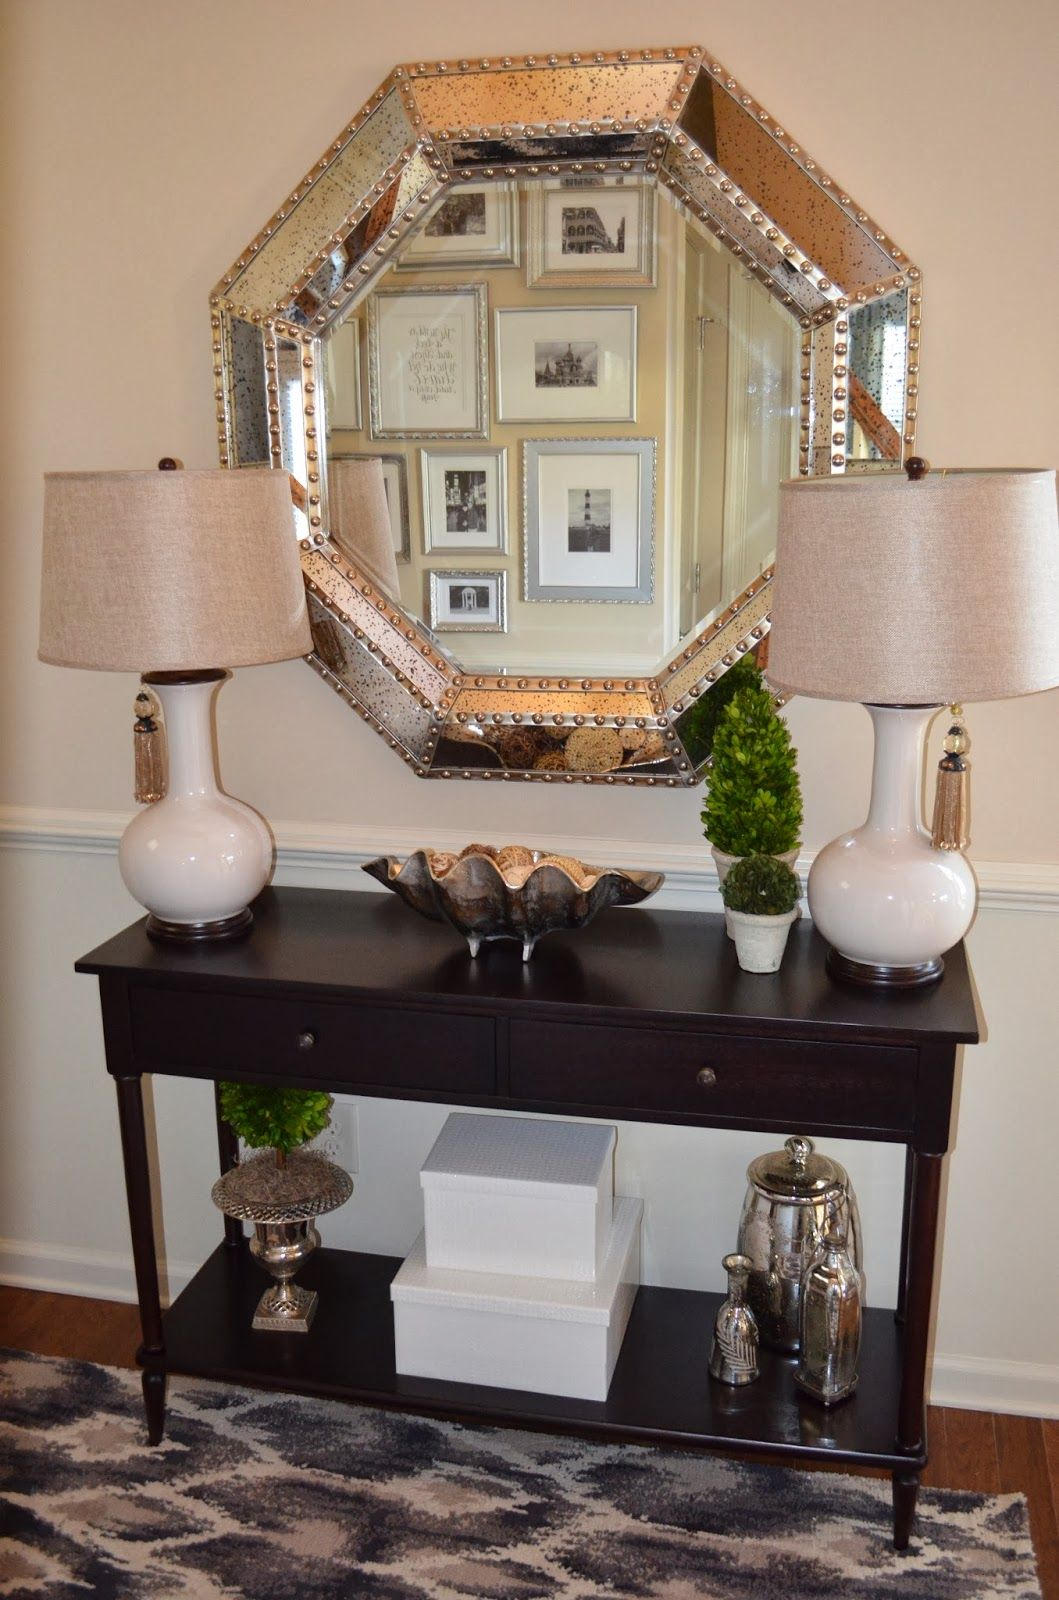 Foyer decor with entryway console table and large silver mirror foyer decor with entryway console table and large silver mirror geotapseo Choice Image